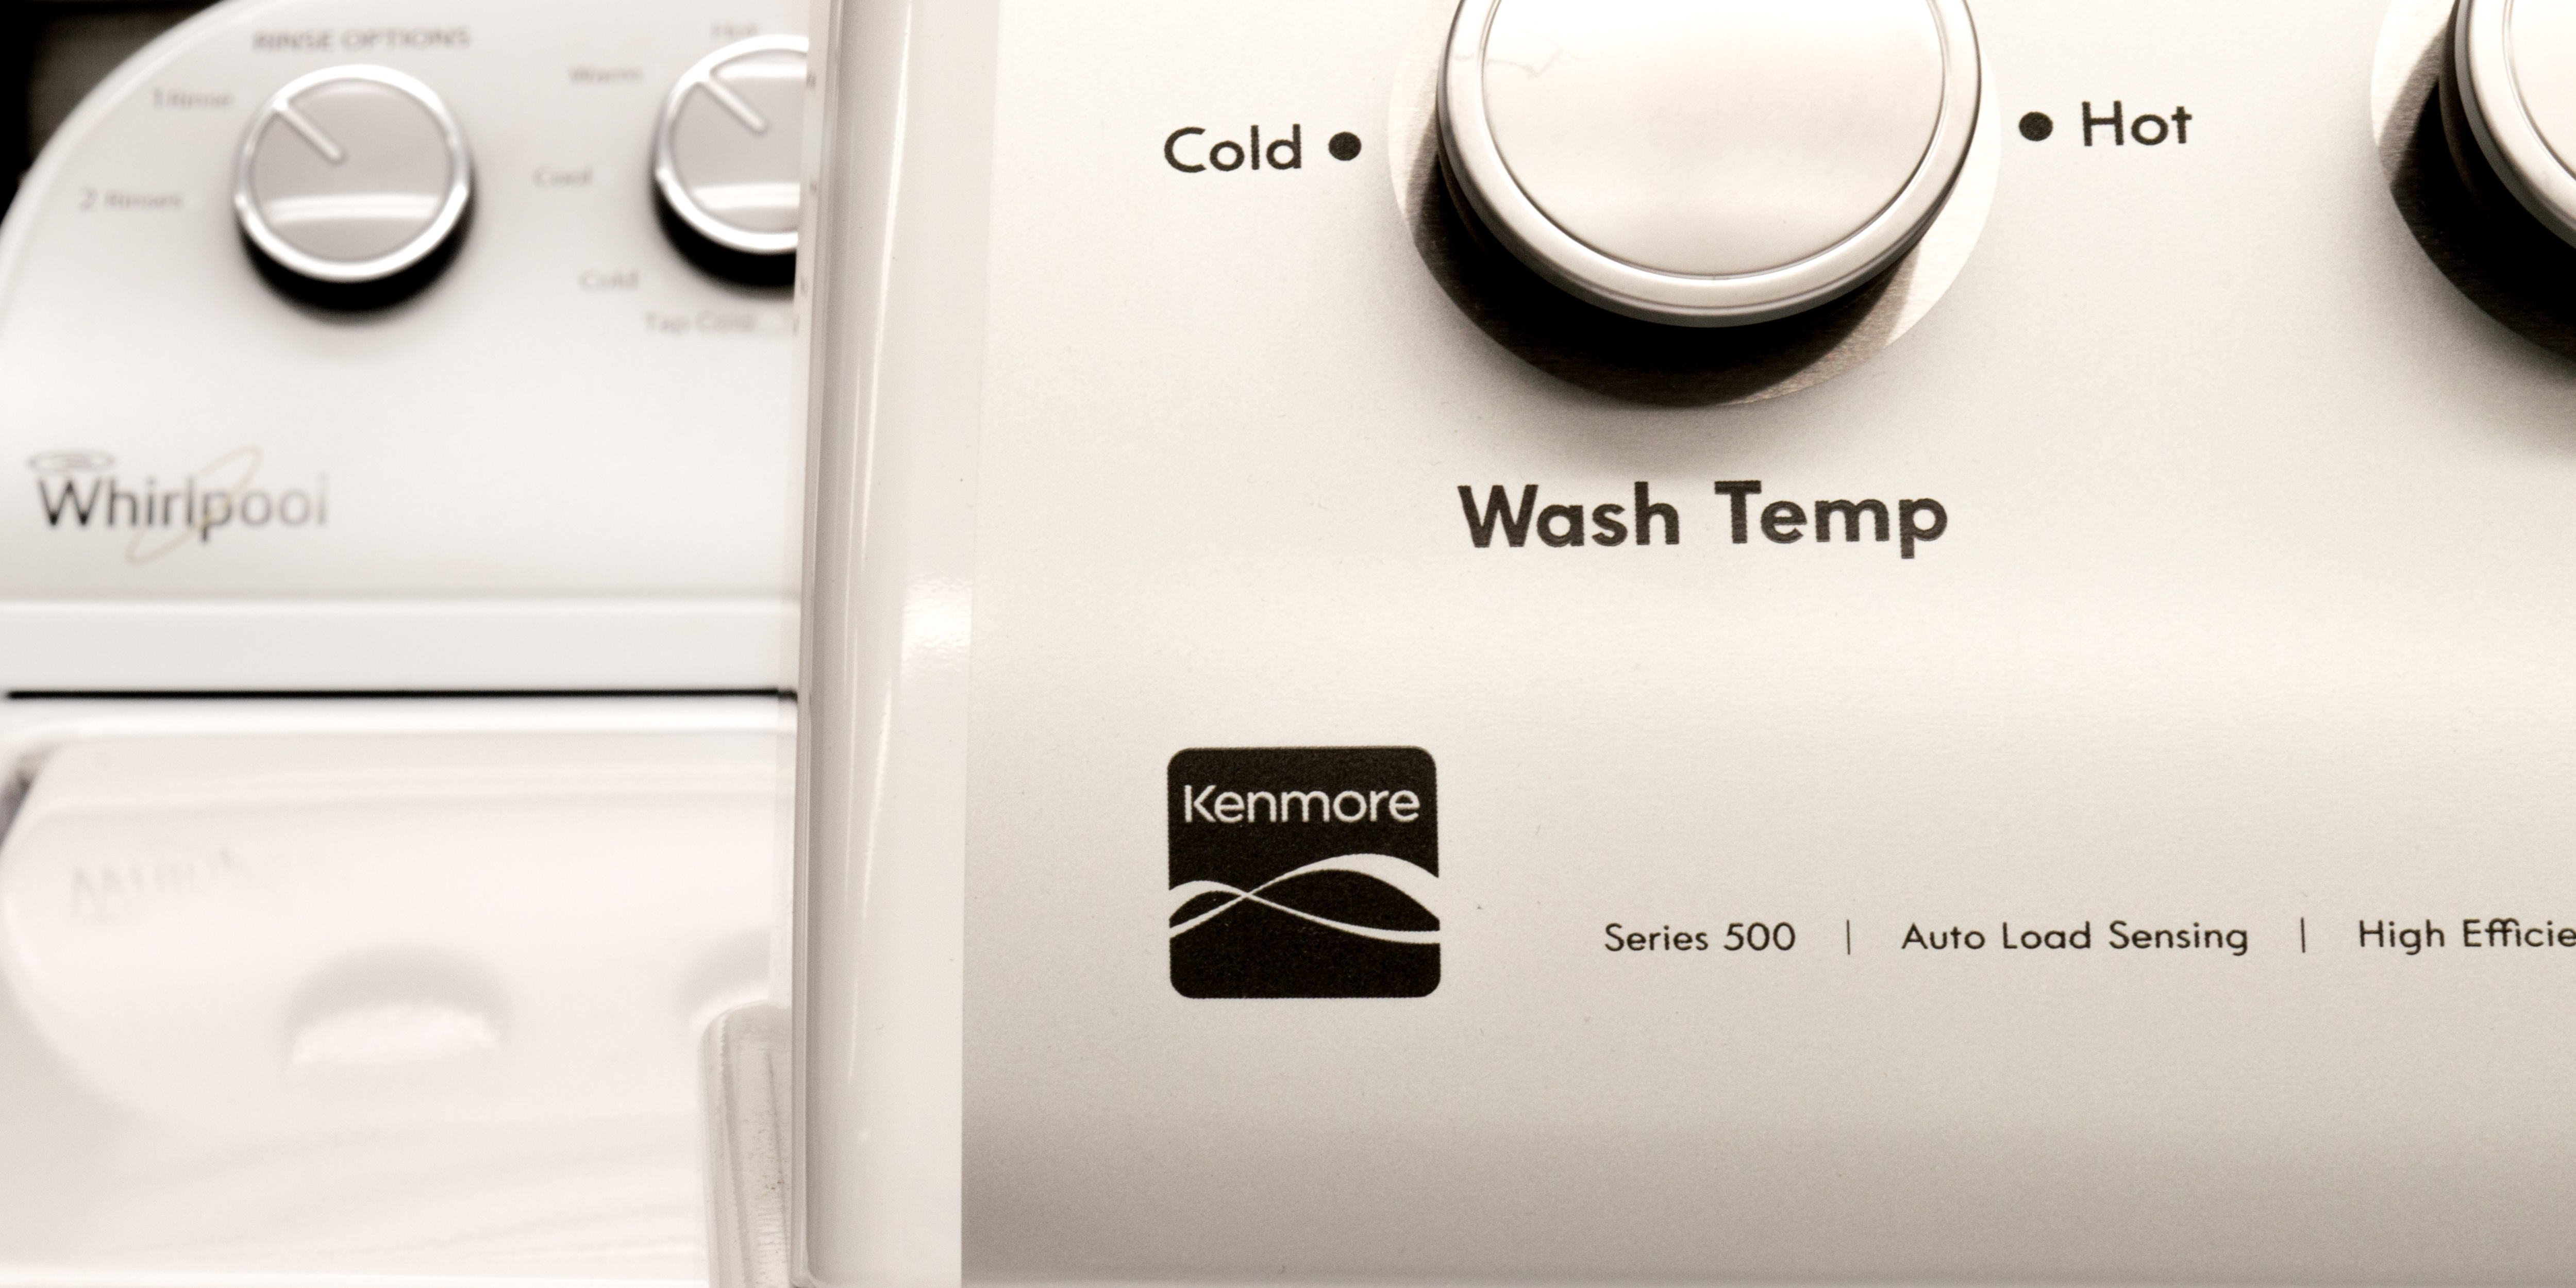 Kenmores are designed and built by other companies. The 25132 has familial resemblance to some Whirlpool washers.